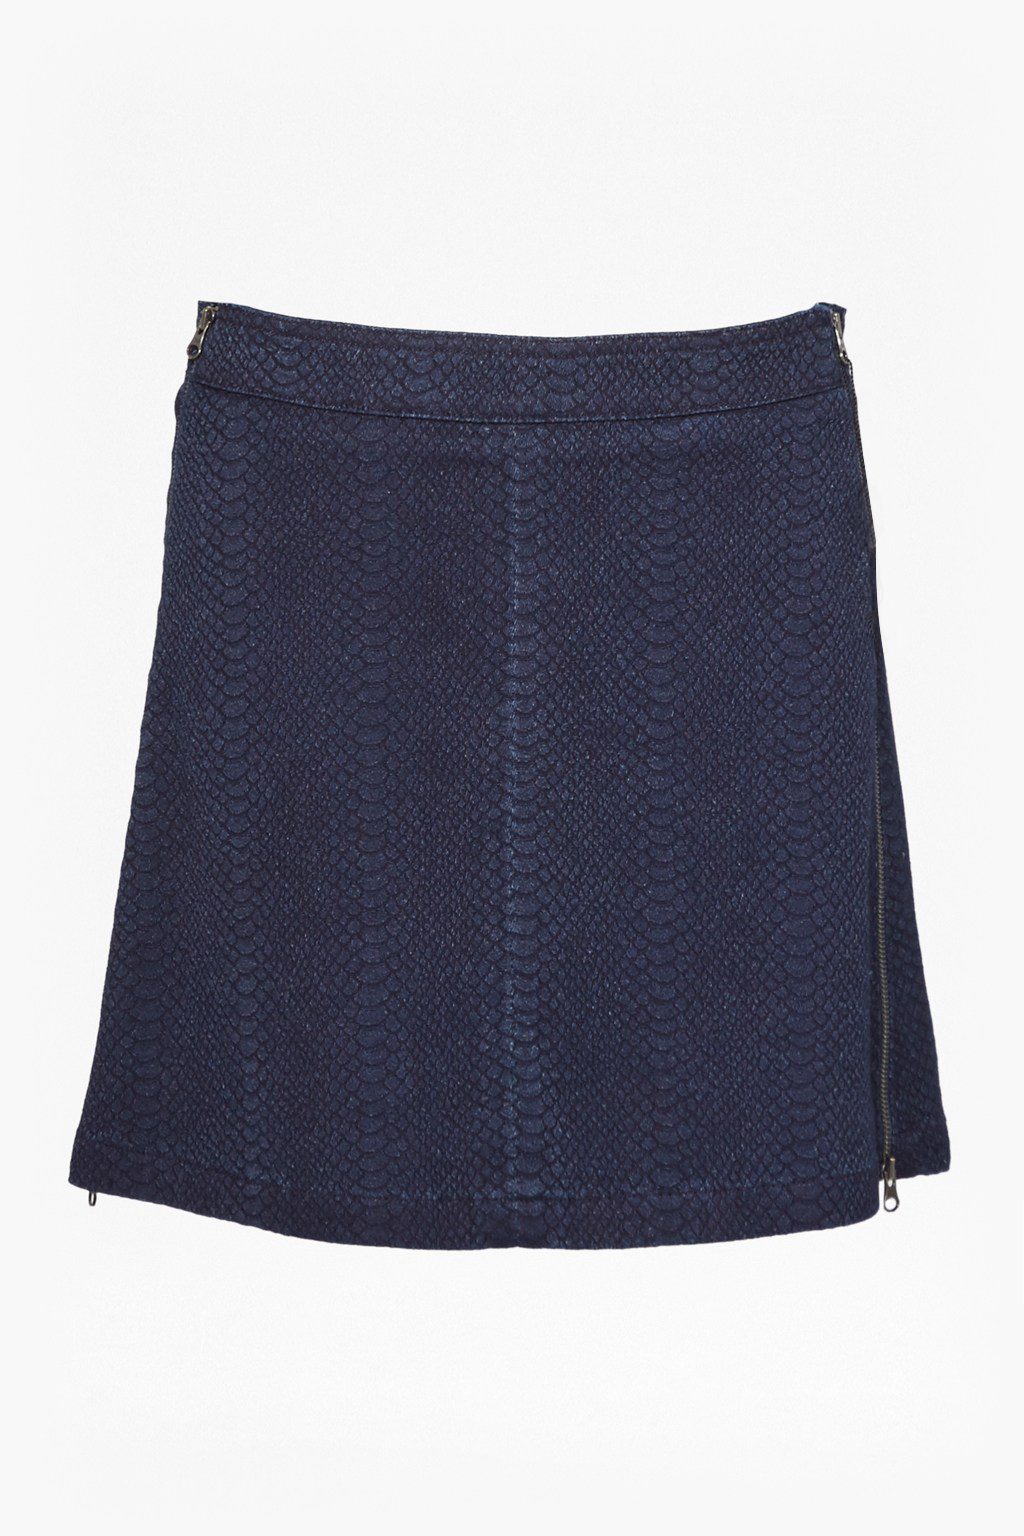 French Connection Denim Skirt